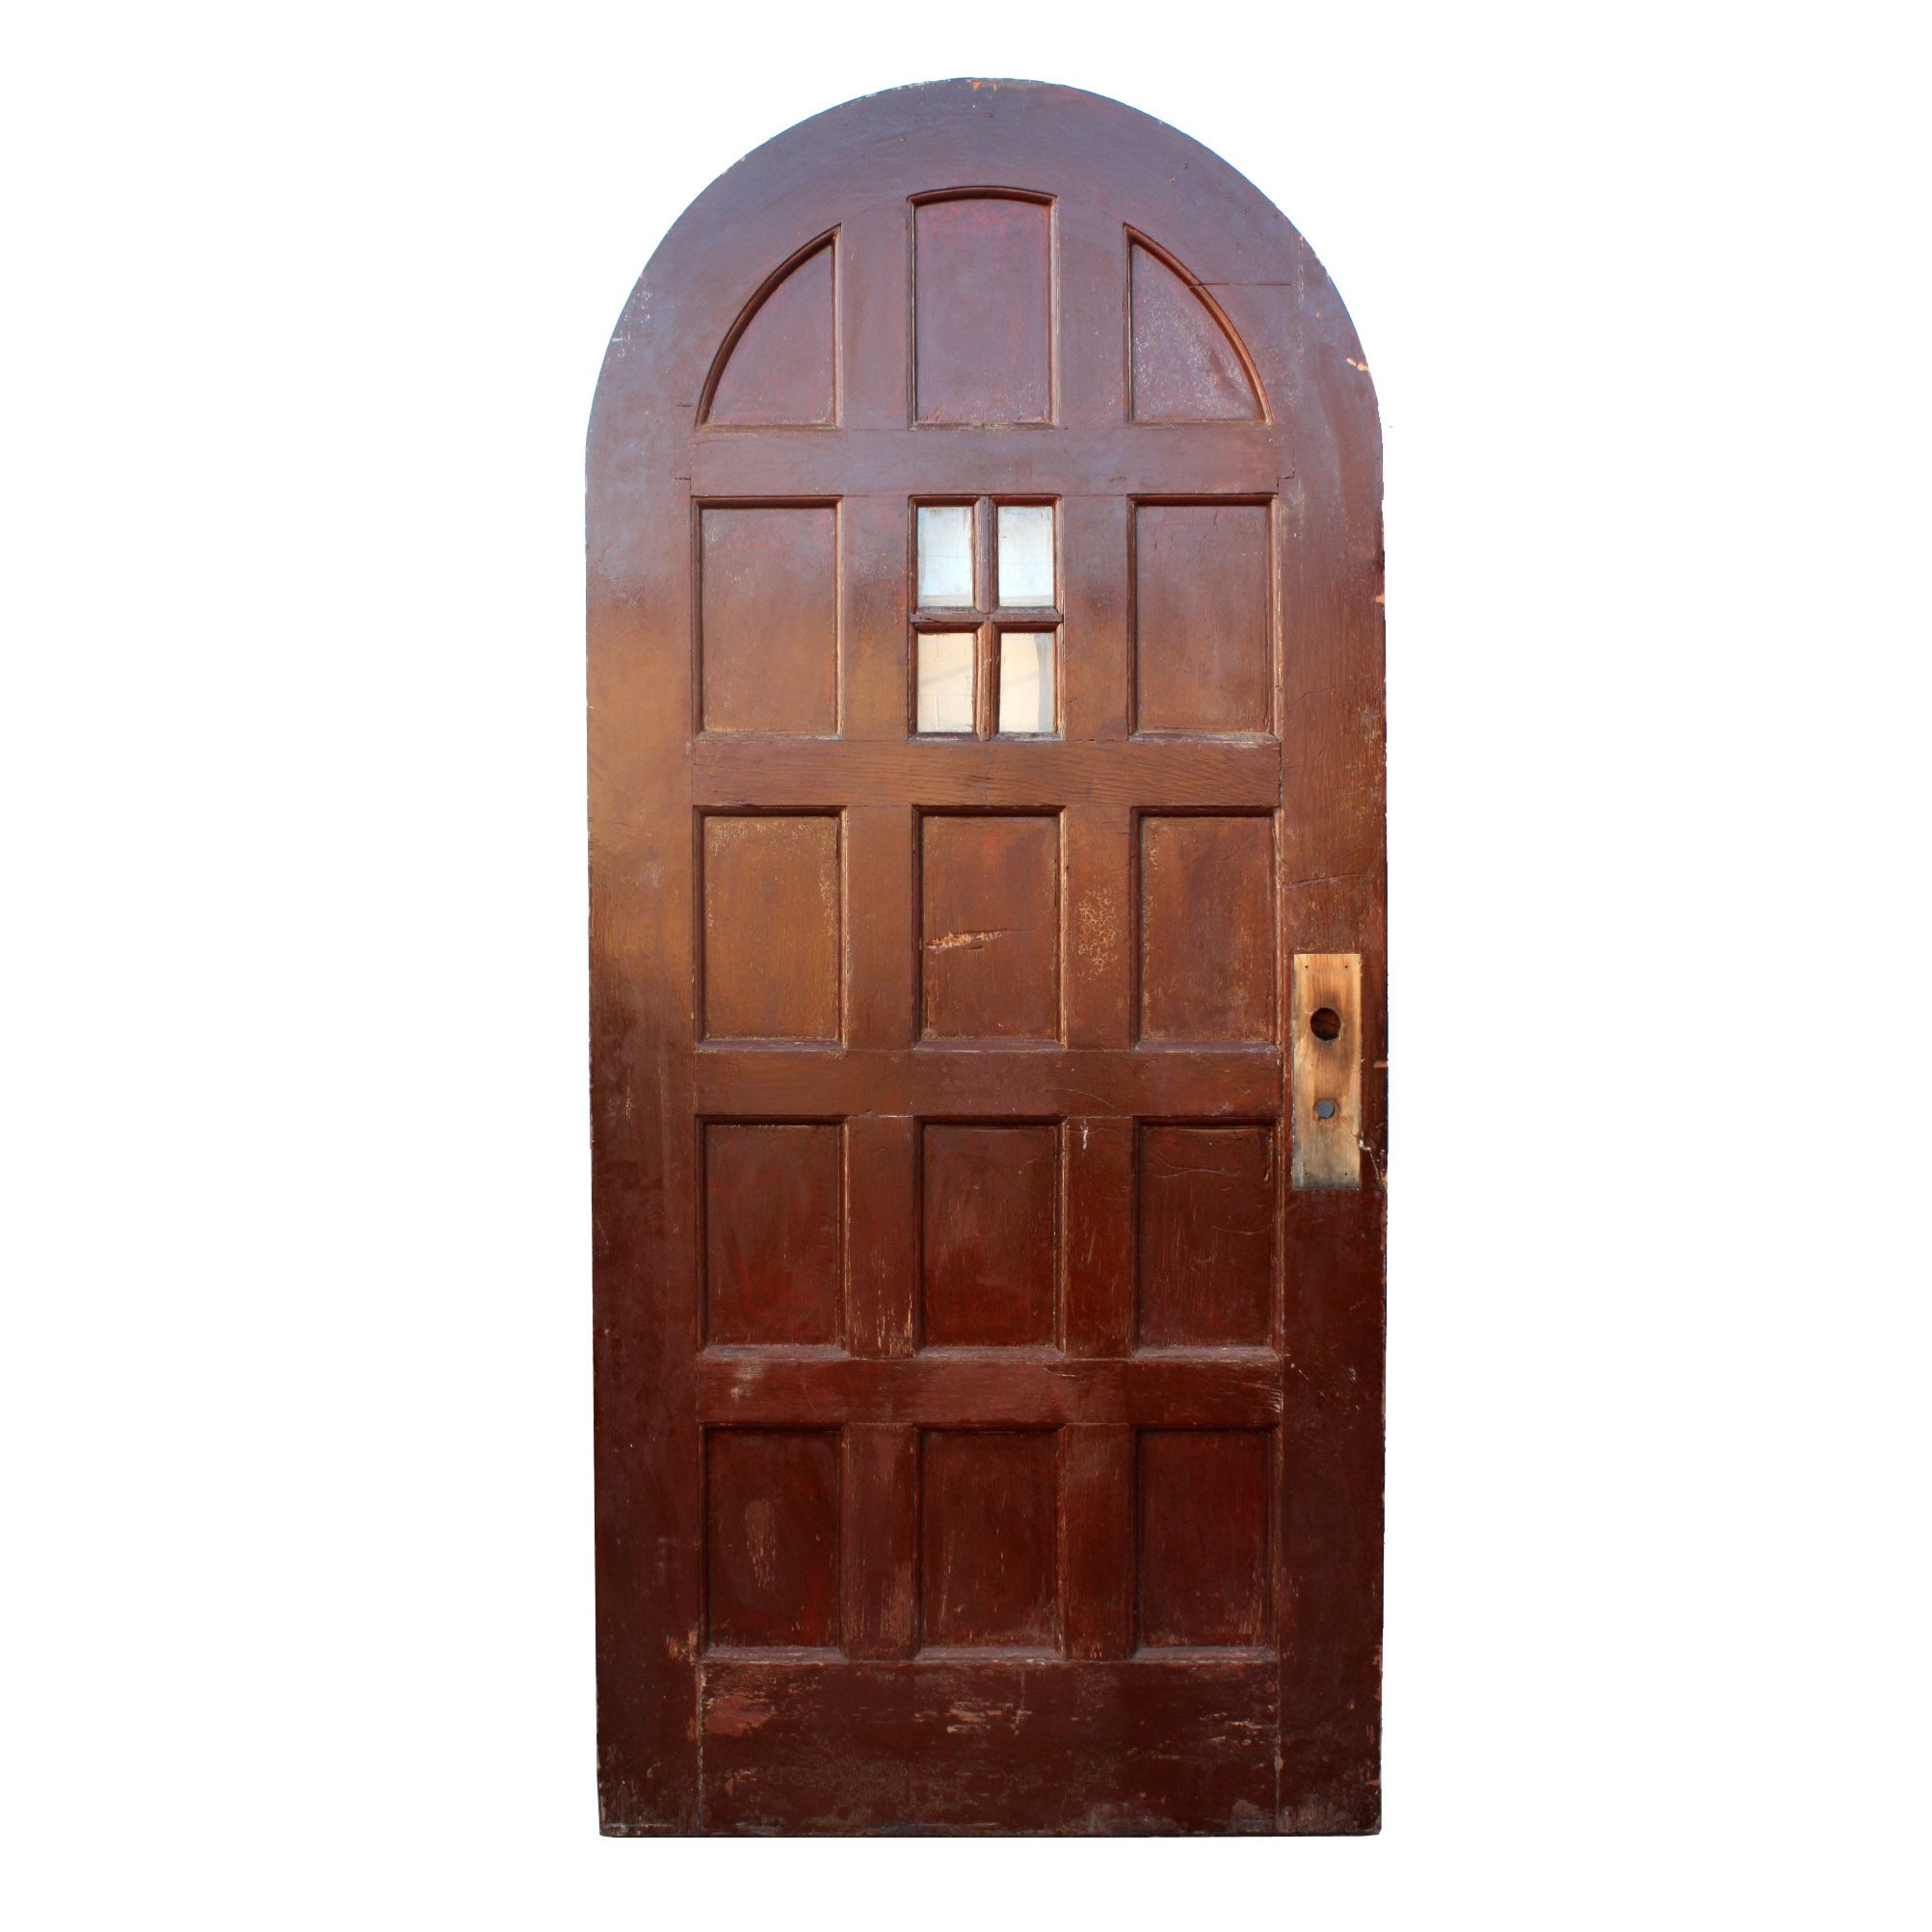 Antique exterior 36 arched door with panels and window for External front doors for sale